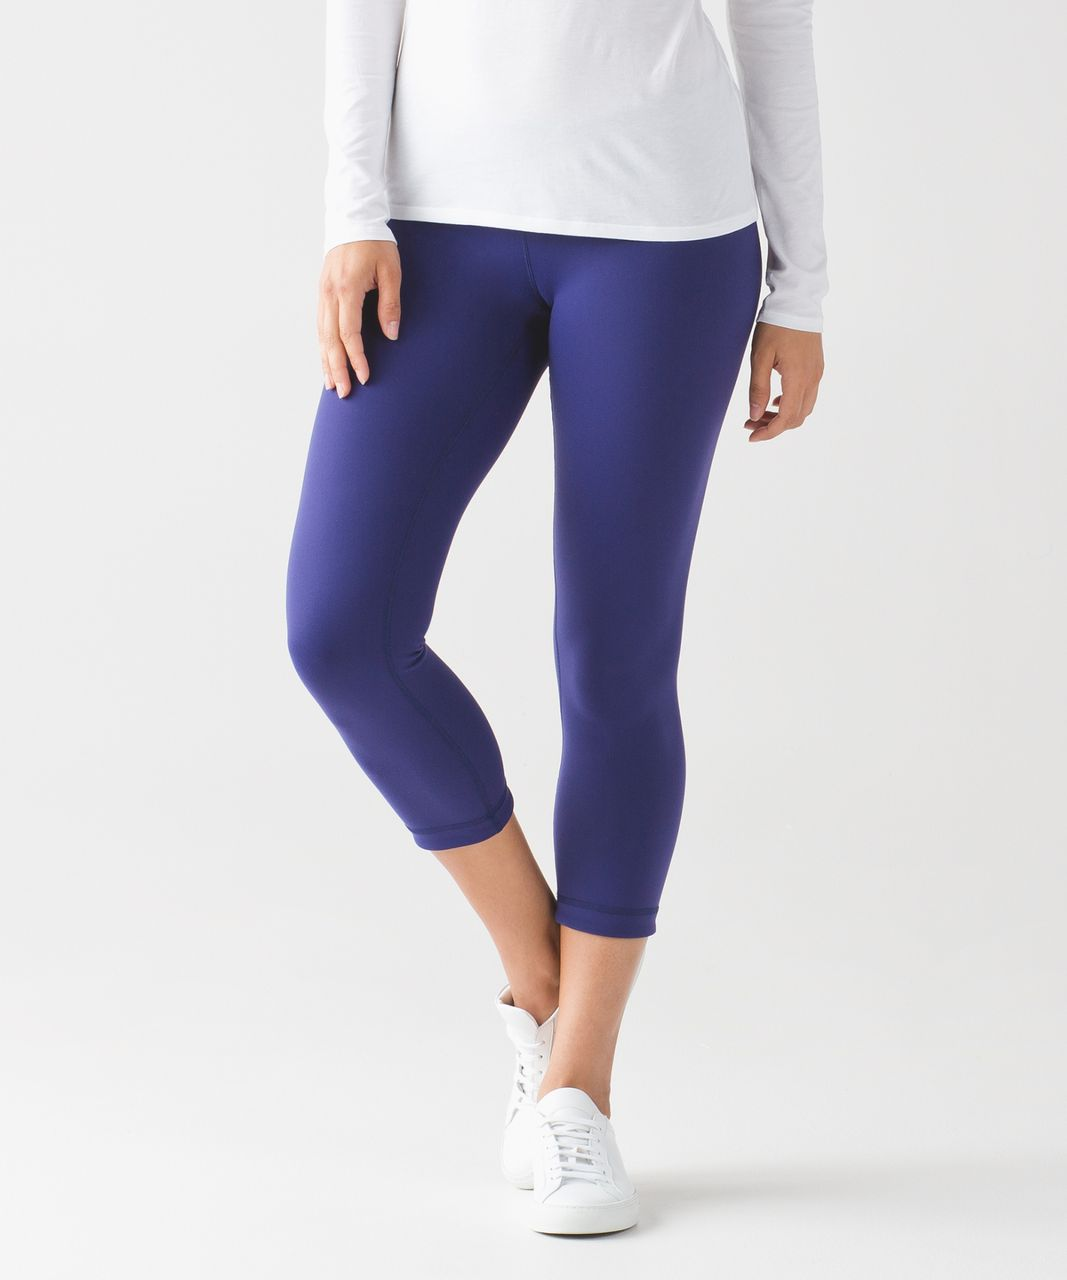 Lululemon Wunder Under Crop III (Reversible) - Emperor Blue / Sapphire Blue